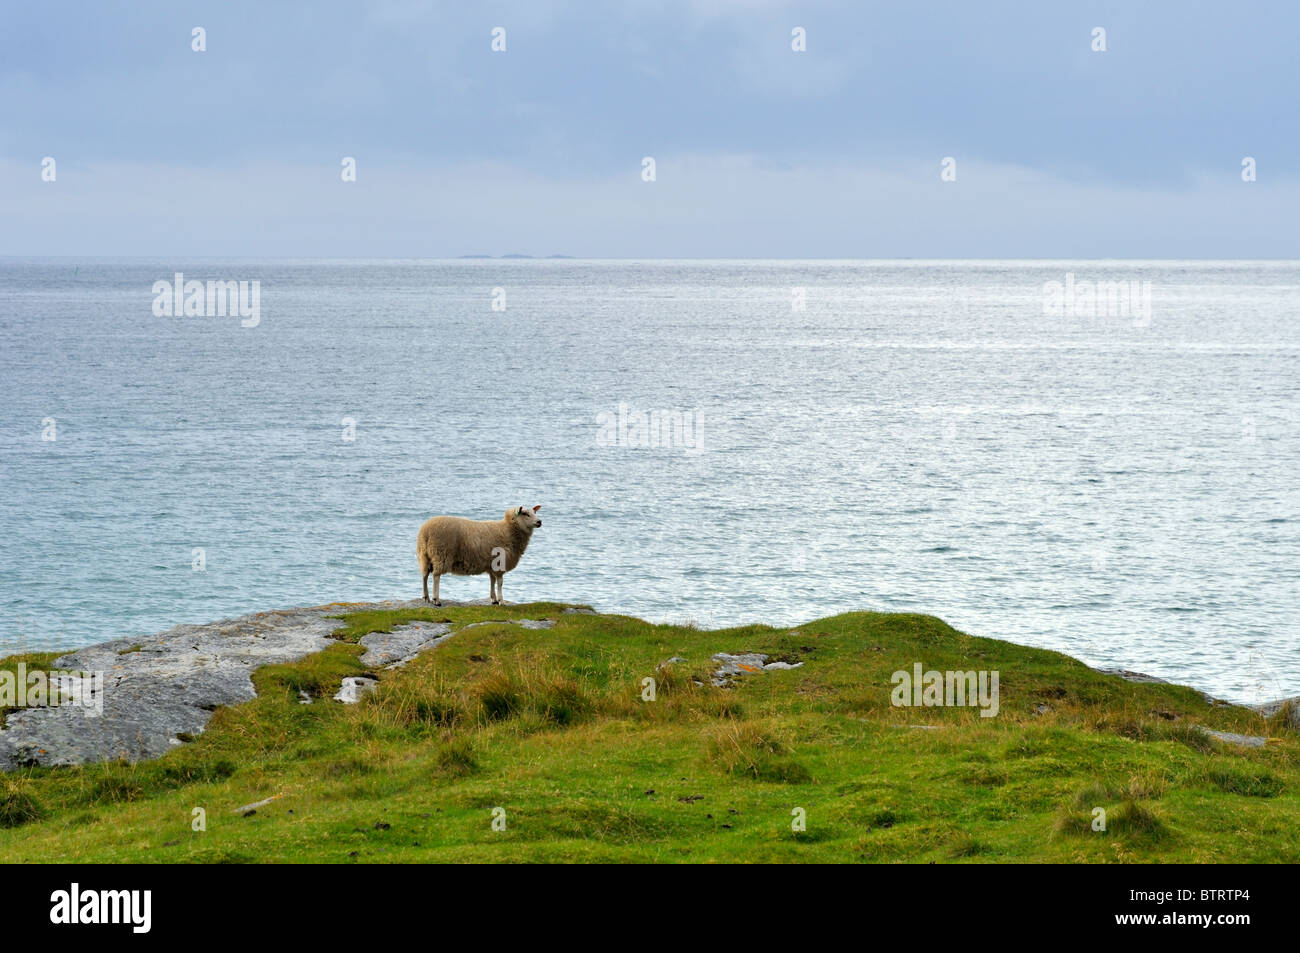 A sheep standing on a grass hill by the sea. Lofoten islands, North Norway - Stock Image